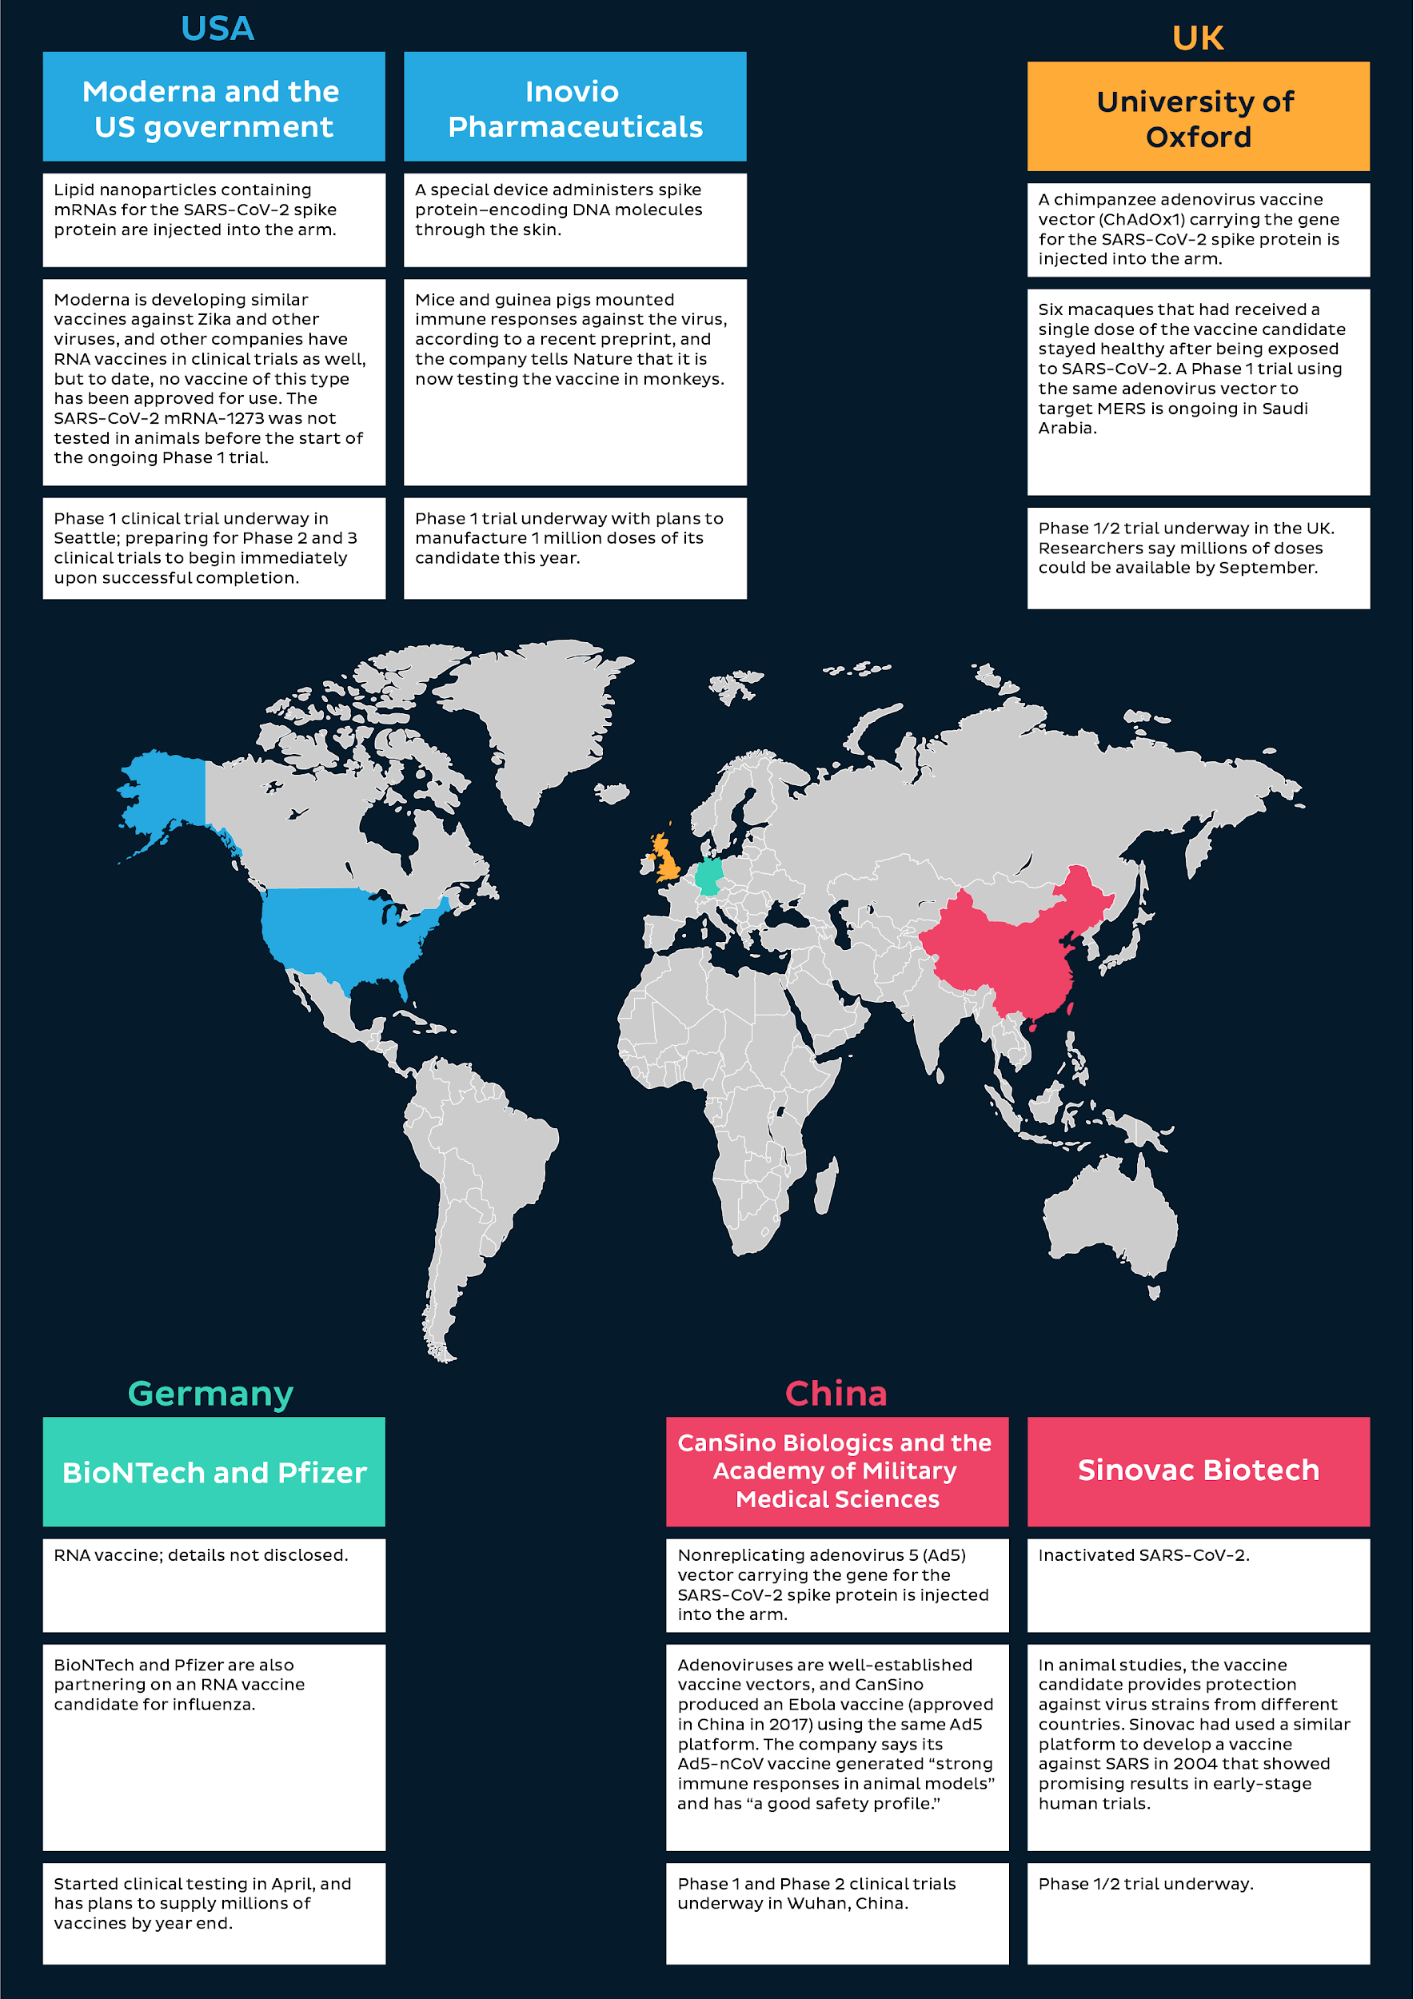 Infographic on frontrunners of vaccine development